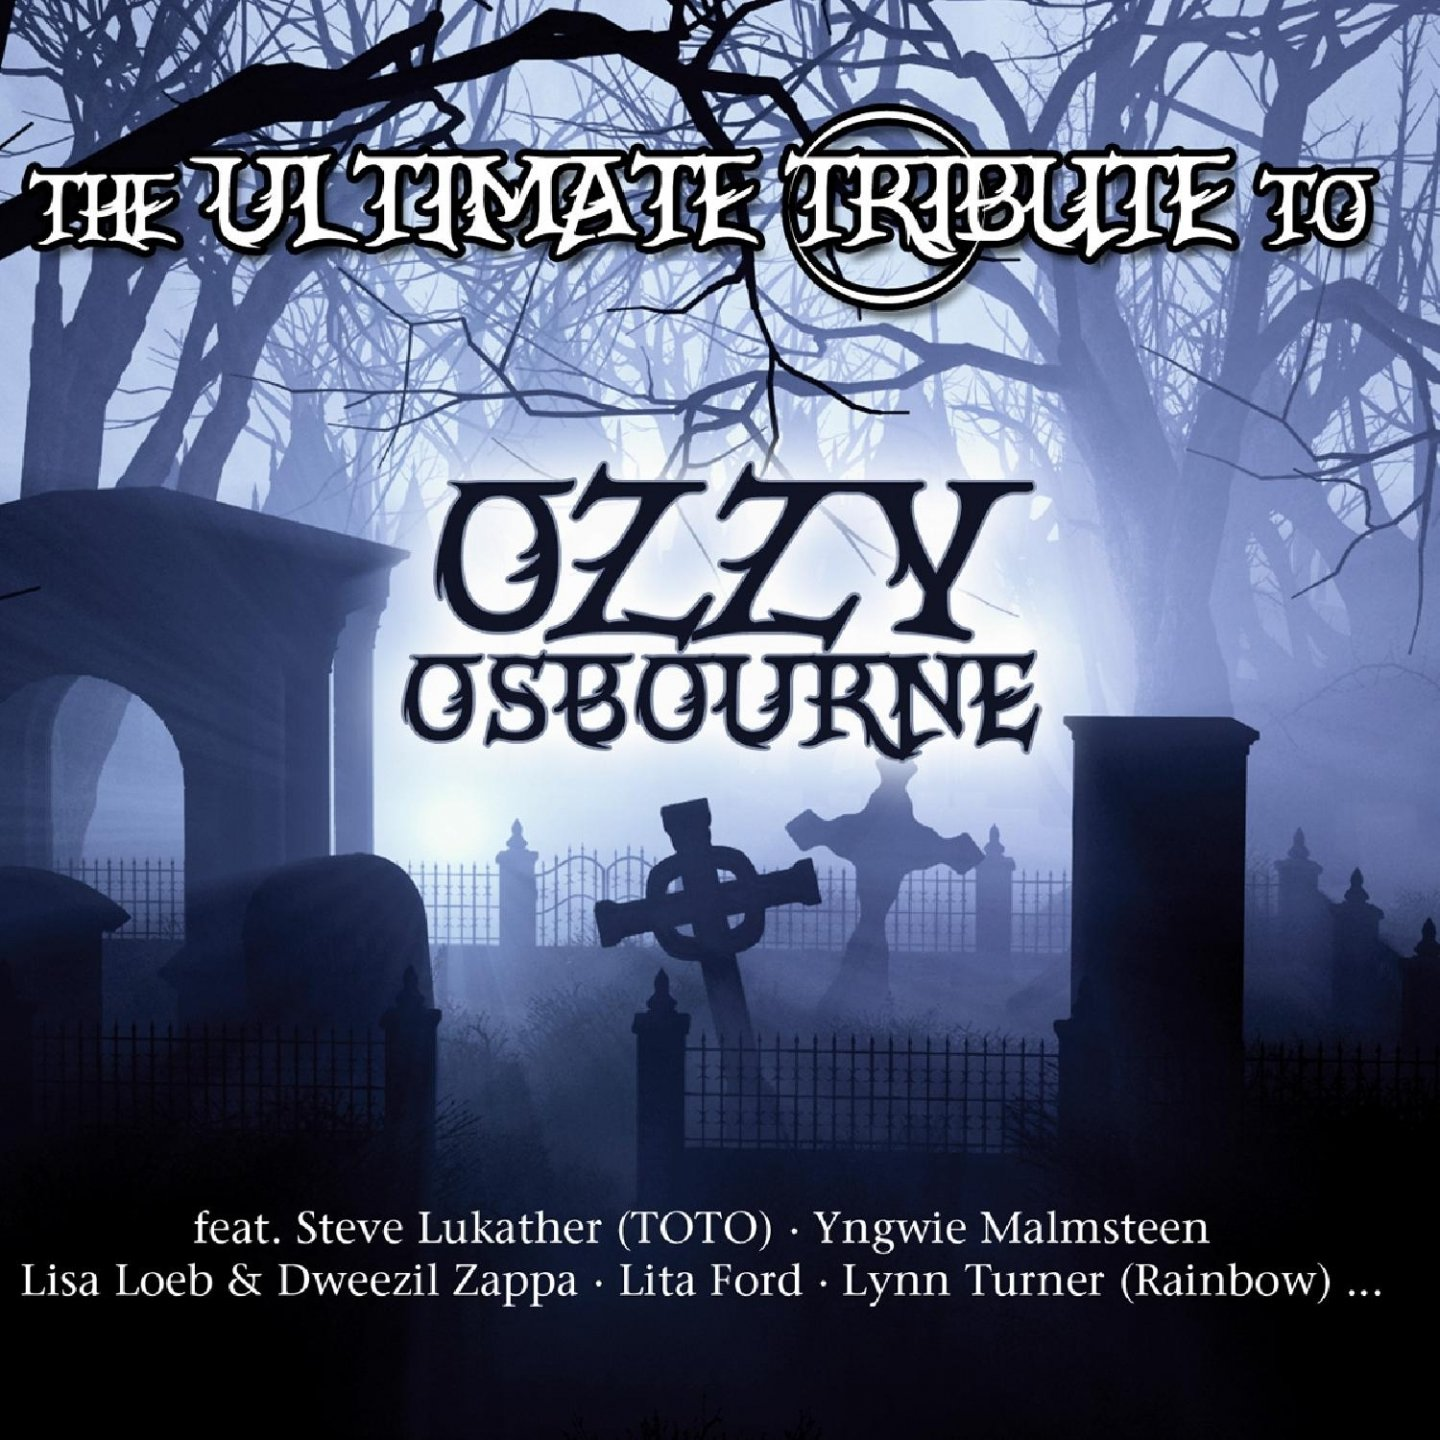 Ozzy Osbourne, Tribute To by zyx/gcr